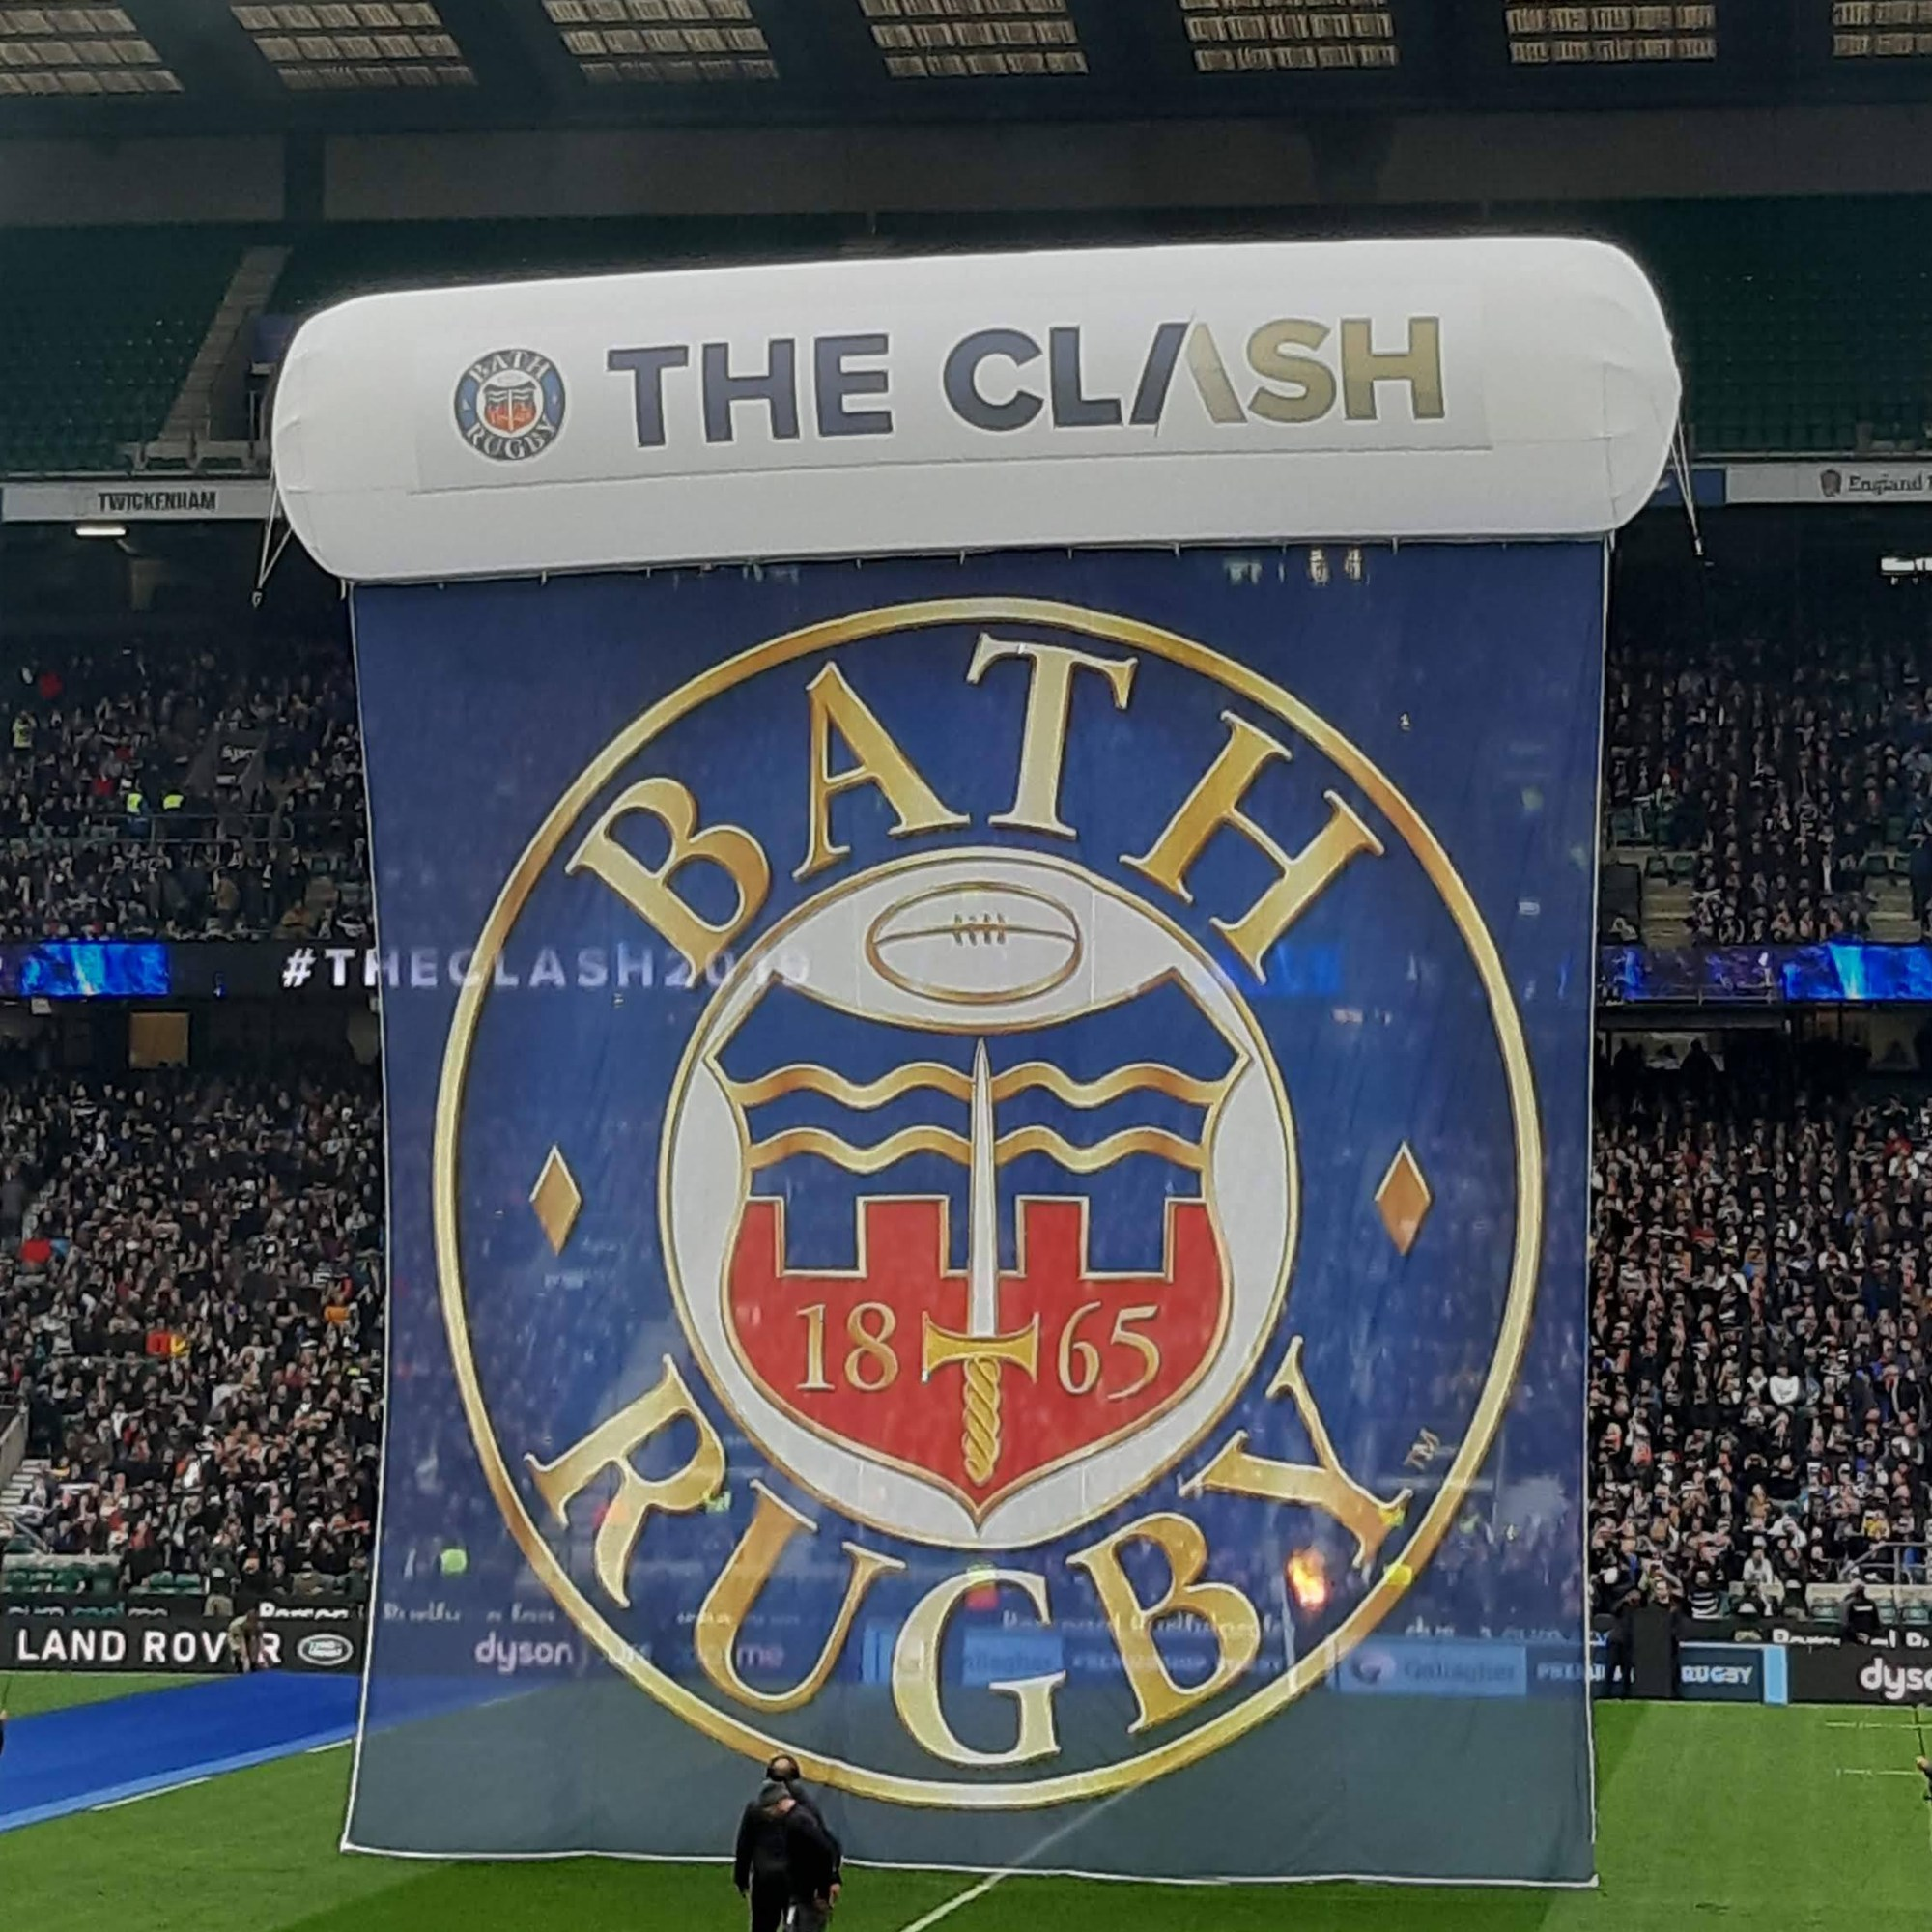 Bath Rugby banner at The Clash